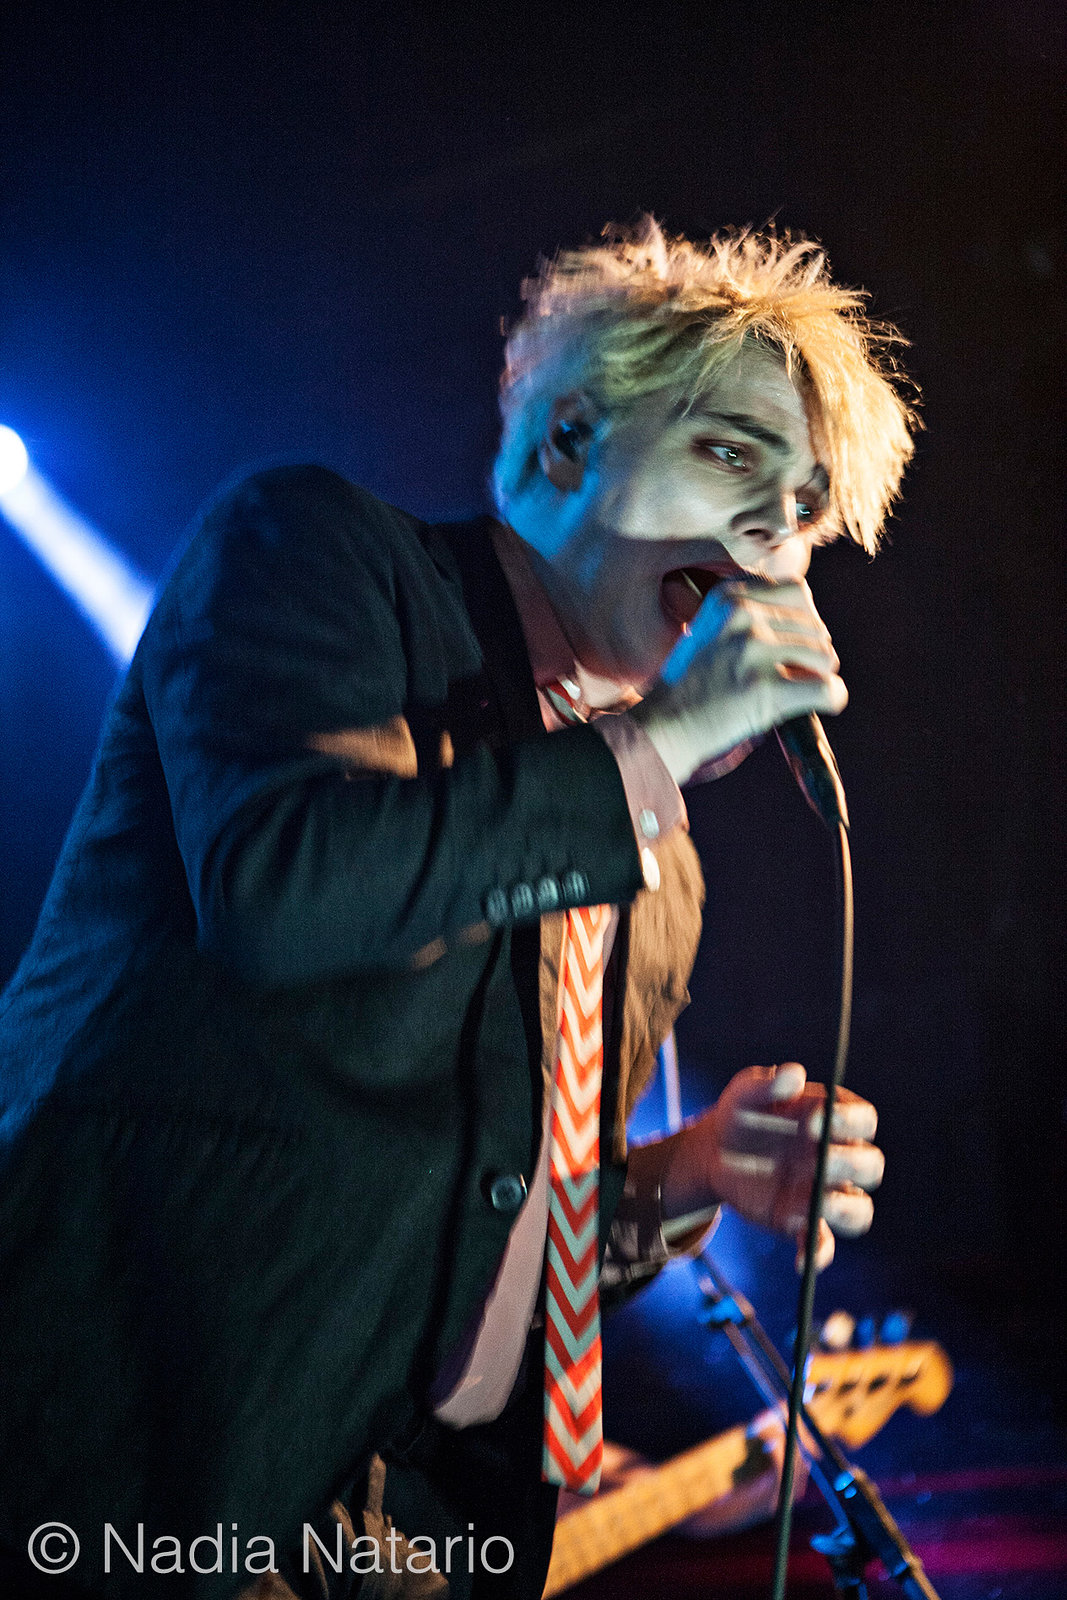 Gerard Way at Apolo